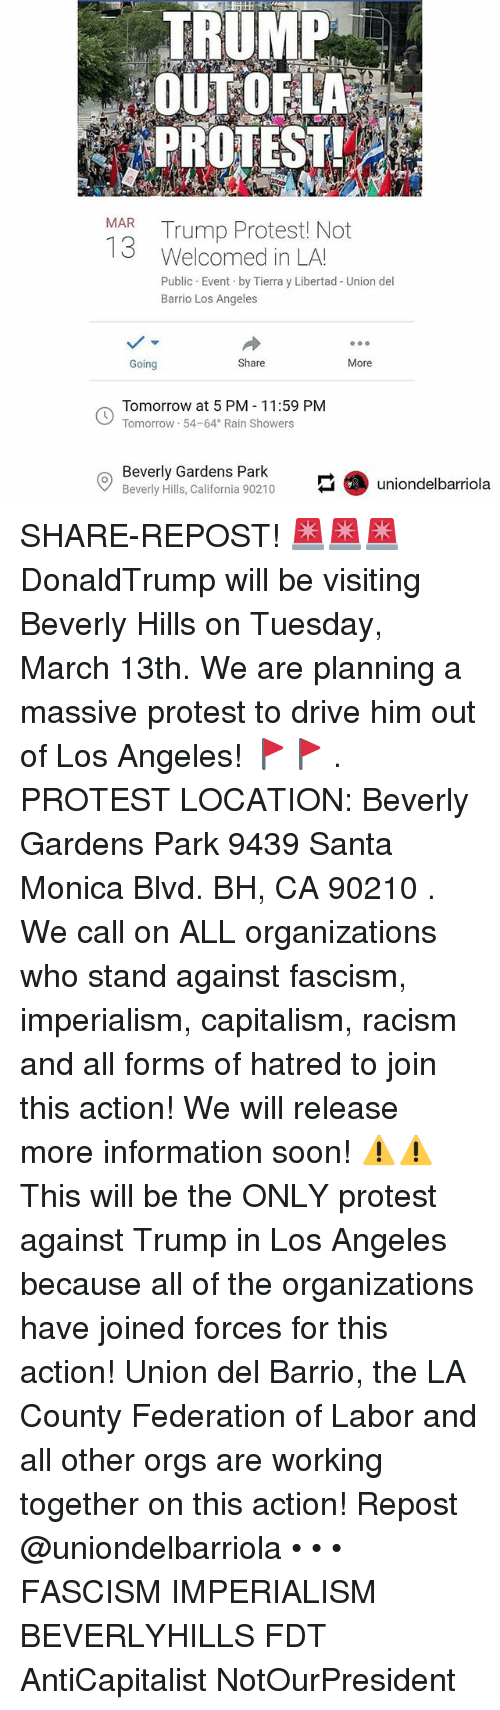 Memes, Protest, and Racism: TRUMP  OUTOFLA  PROTEST  MAR Trump Protest! Not  13  Welcomed in LAU  Public Event by Tierra y Libertad - Union del  Barrio Los Angeles  Going  Share  More  Tomorrow at 5 PM 11:59 PM  Tomorrow 54-64 Rain Showers  Beverly Gardens Park  Beverly Hill, California 90210uniondelbarriola SHARE-REPOST! 🚨🚨🚨 DonaldTrump will be visiting Beverly Hills on Tuesday, March 13th. We are planning a massive protest to drive him out of Los Angeles! 🚩🚩 . PROTEST LOCATION: Beverly Gardens Park 9439 Santa Monica Blvd. BH, CA 90210 . We call on ALL organizations who stand against fascism, imperialism, capitalism, racism and all forms of hatred to join this action! We will release more information soon! ⚠️⚠️This will be the ONLY protest against Trump in Los Angeles because all of the organizations have joined forces for this action! Union del Barrio, the LA County Federation of Labor and all other orgs are working together on this action! Repost @uniondelbarriola • • • FASCISM IMPERIALISM BEVERLYHILLS FDT AntiCapitalist NotOurPresident